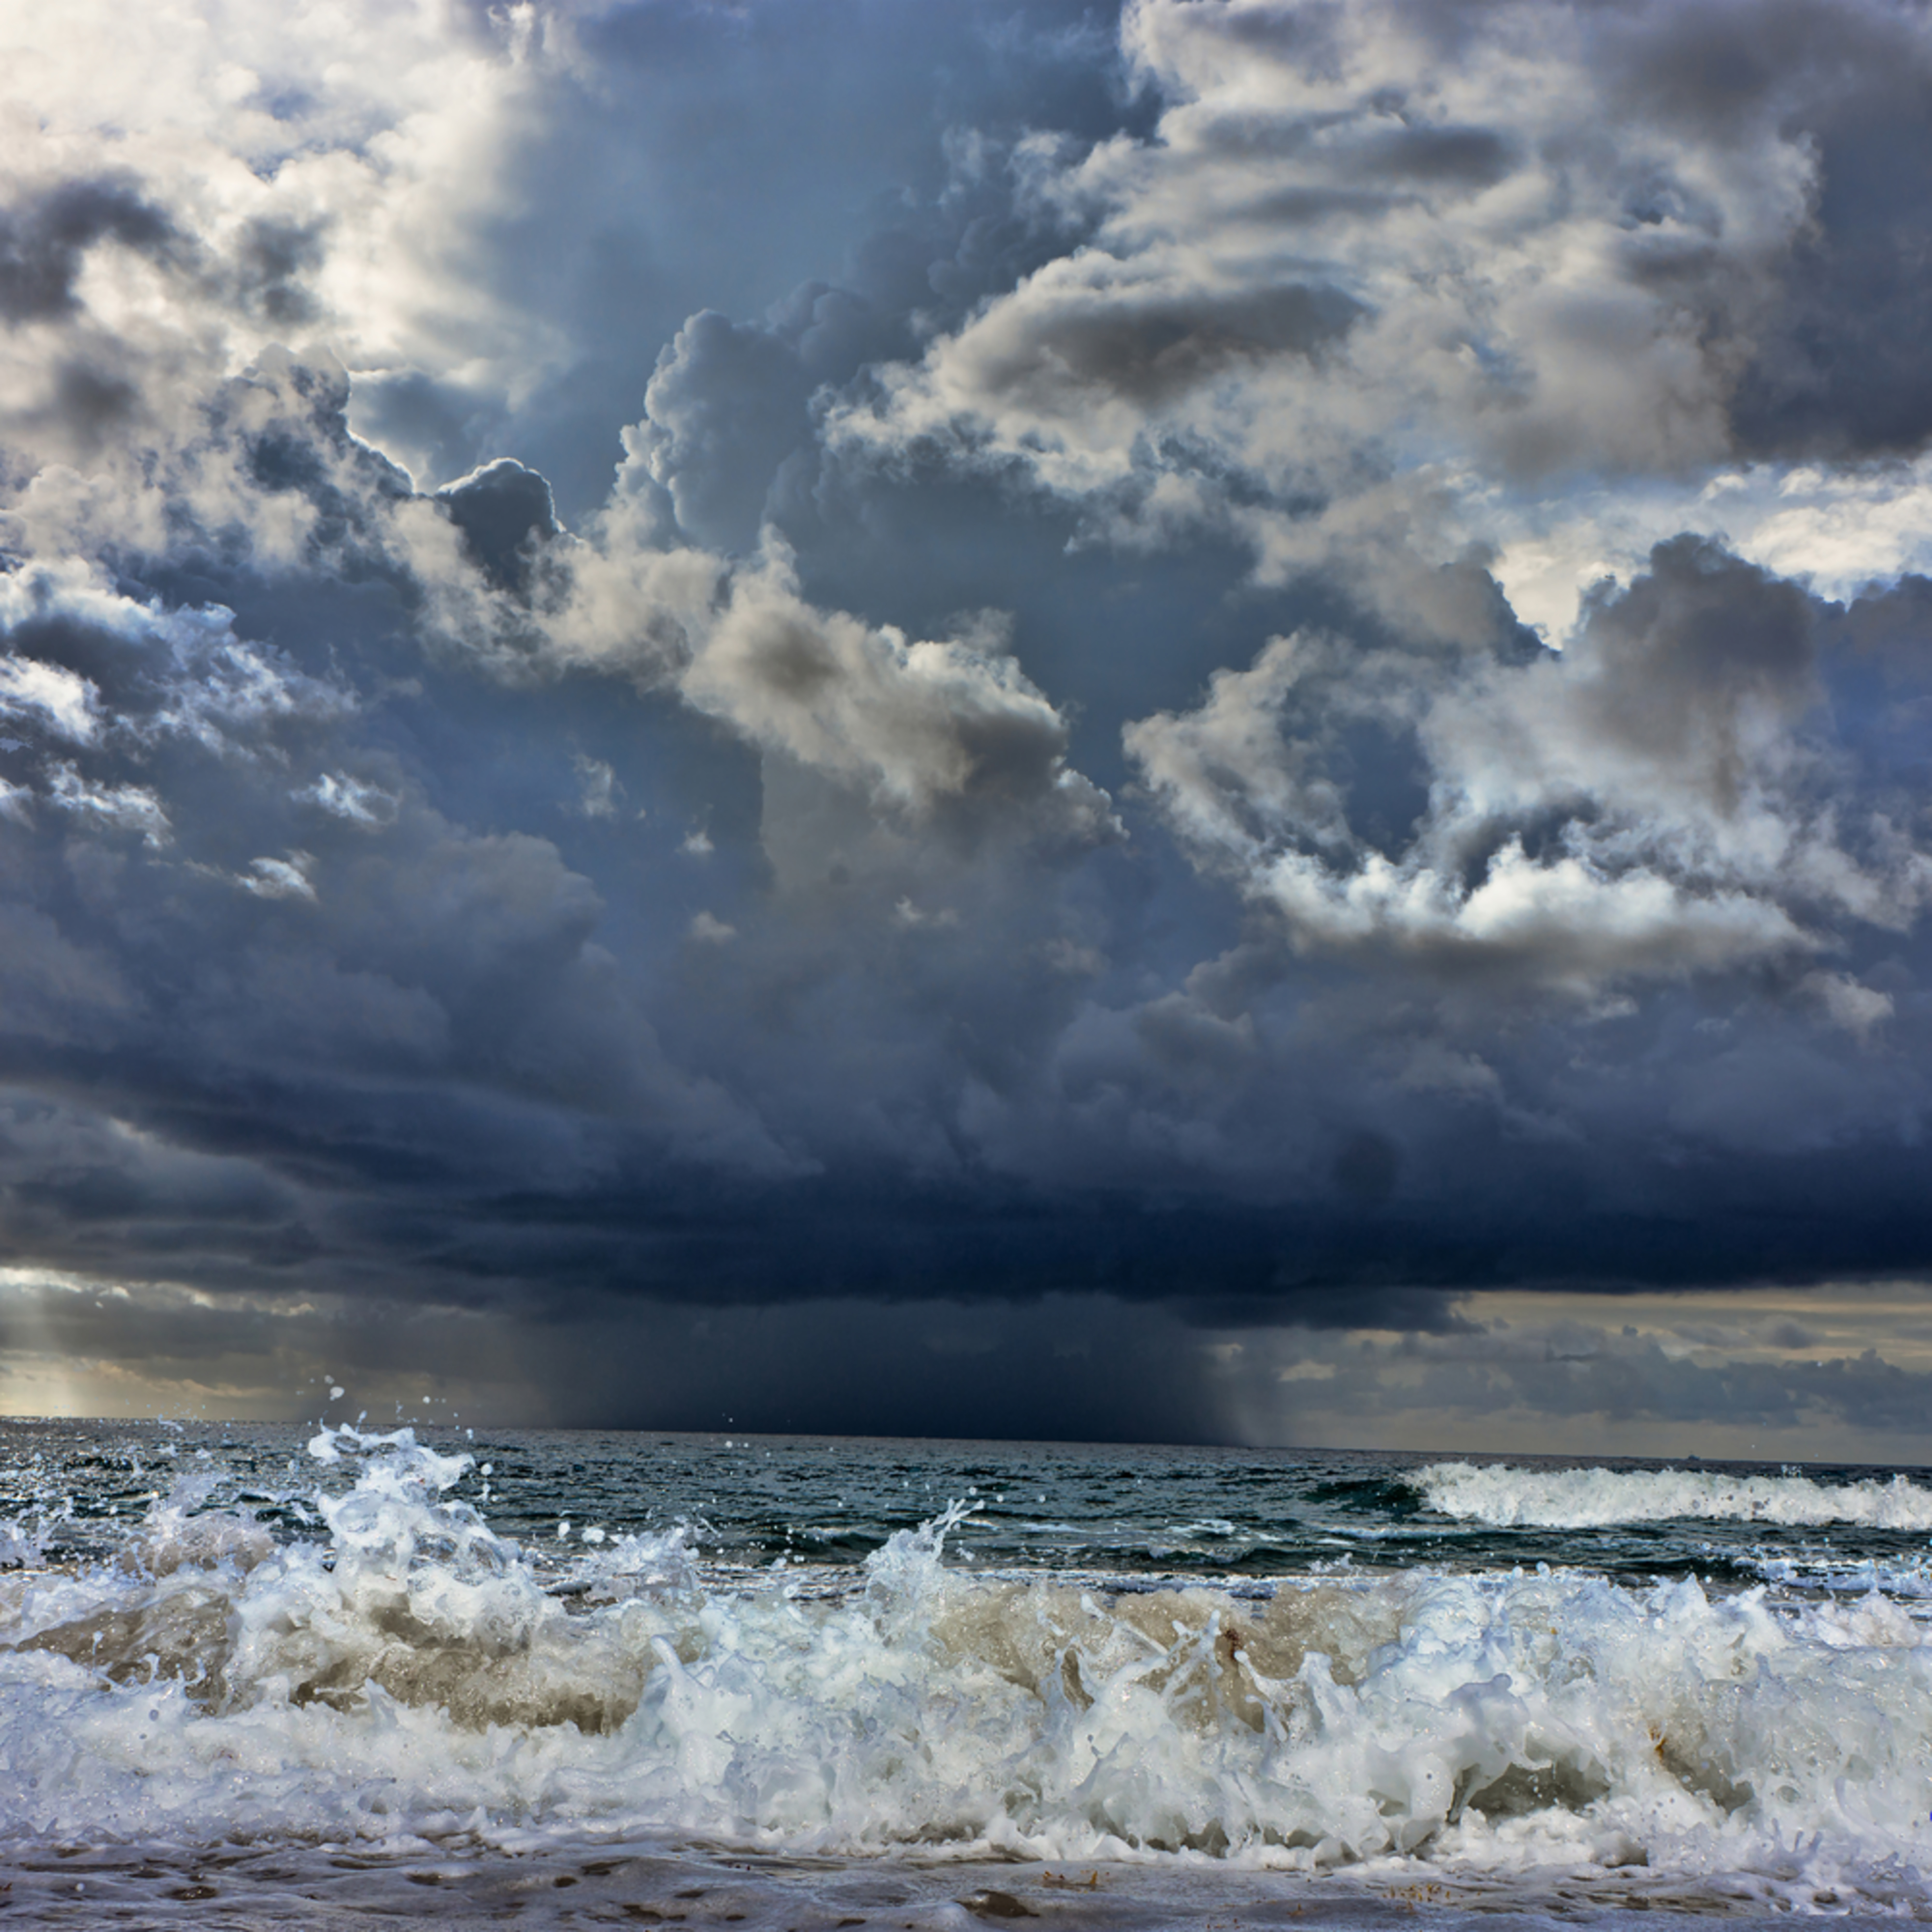 Storm on the horizon.cosimo 140904 0038 signed bffe1n